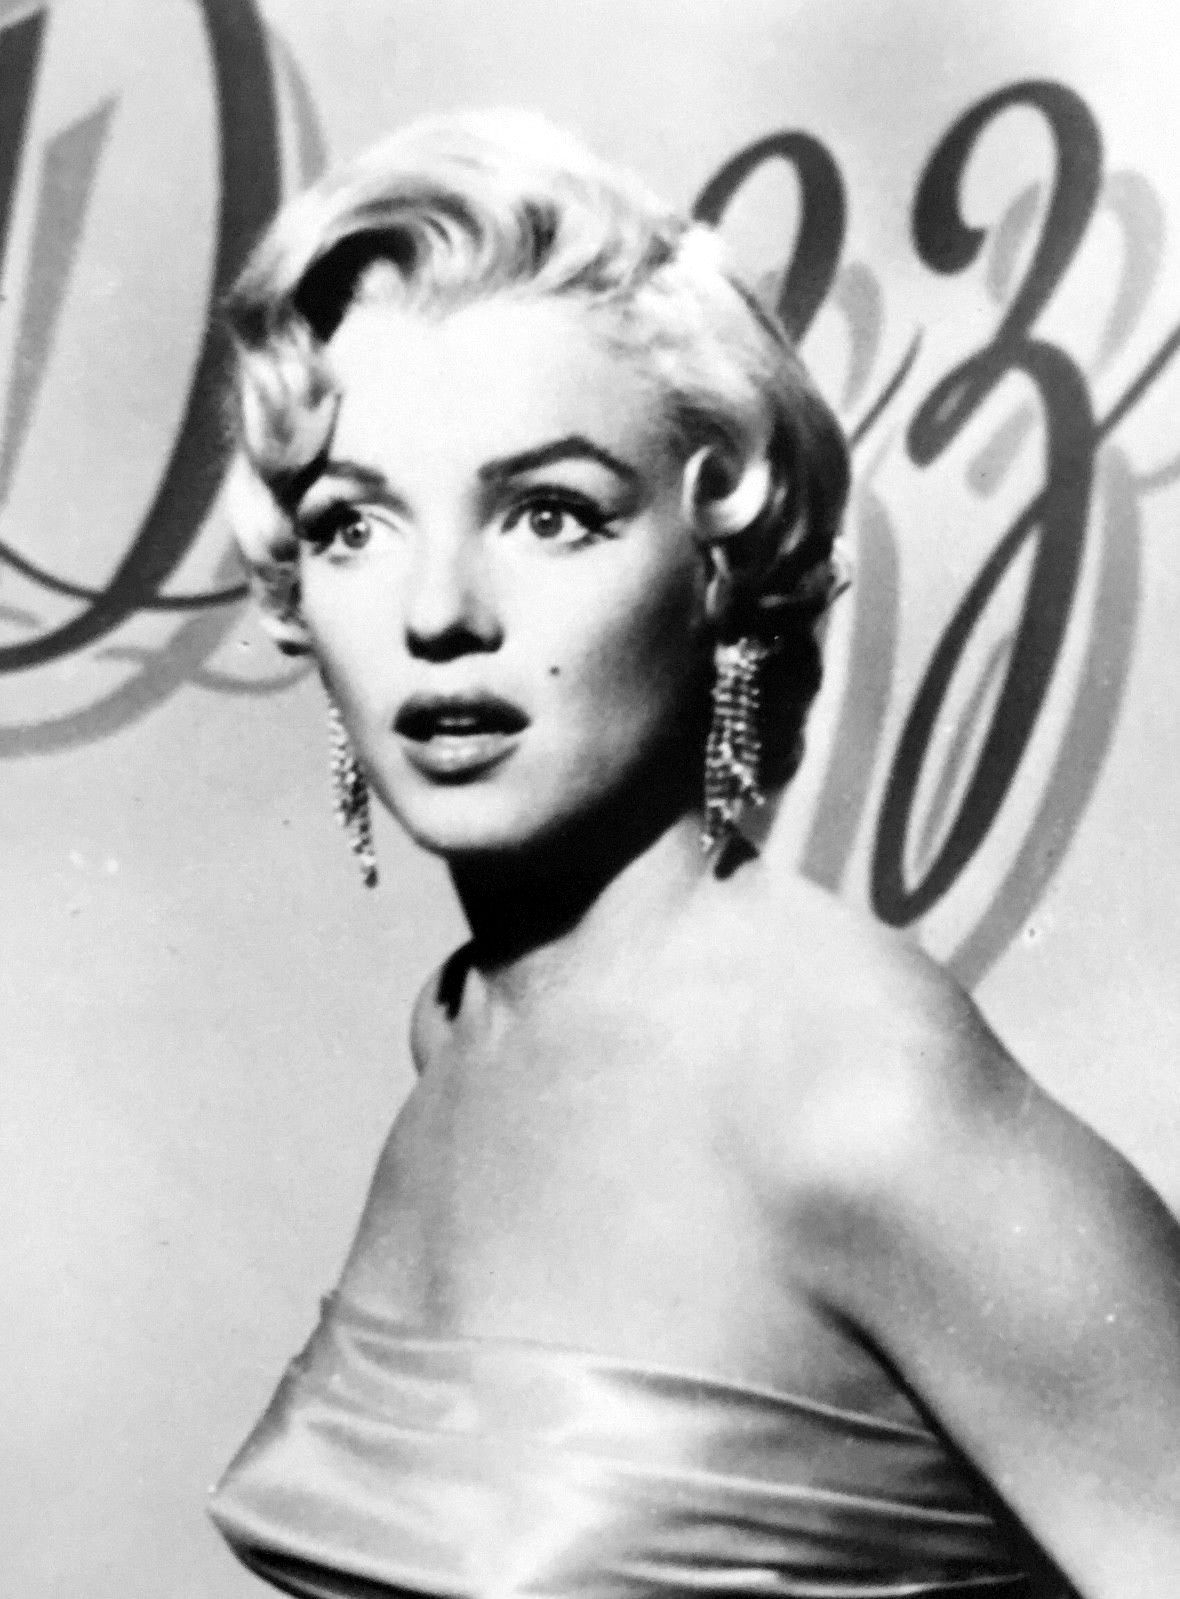 Marilyn Monroe In A Promotional Photograph For The Seven Year Itch 1954